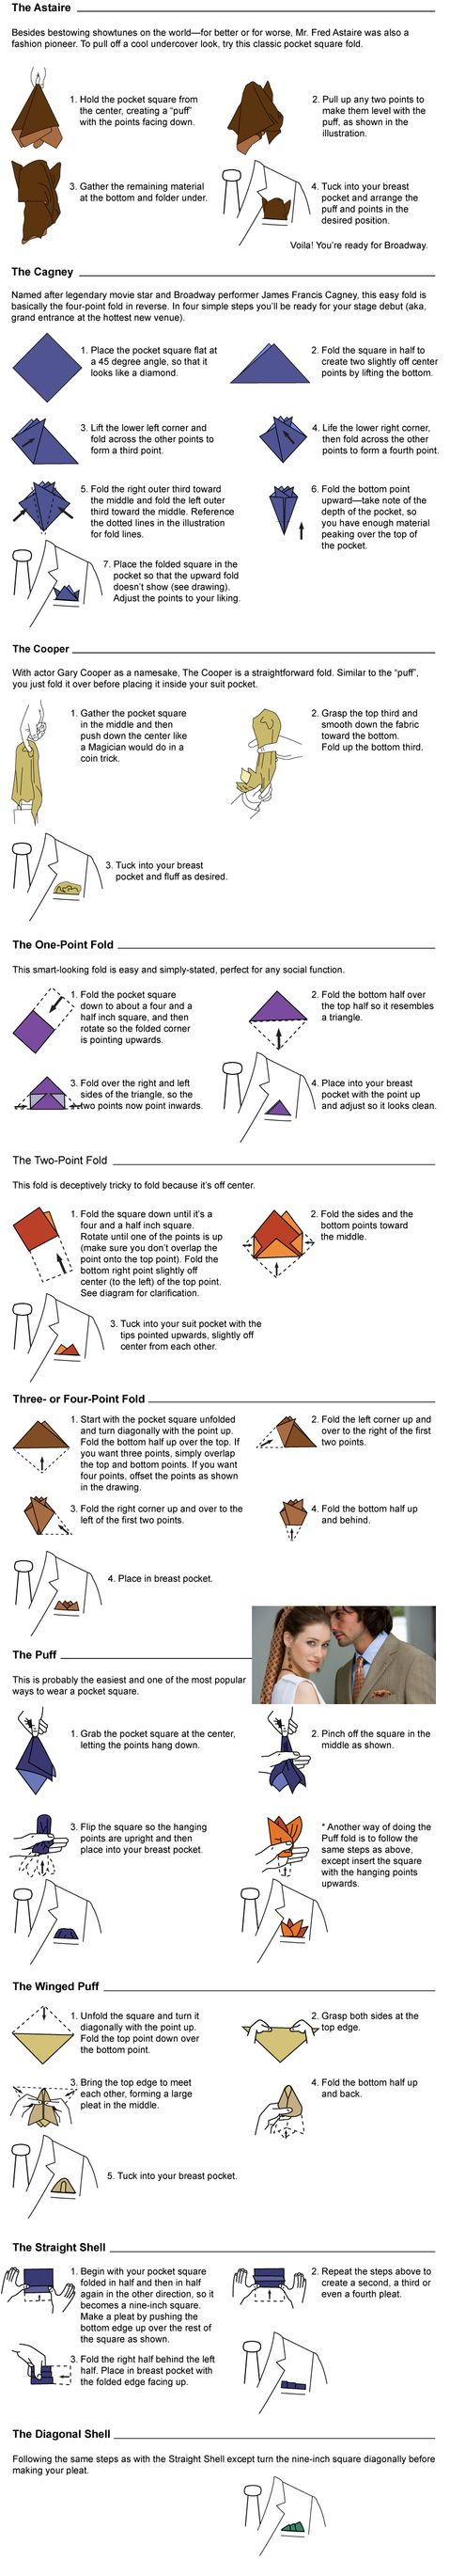 How to fold a pocket square by Belisi  -- If you haven't heard, men's pocket squares are all the rage. Think Fred Astaire meets the 21st century (without the top hat). Sounds cool, right? Now's the hard part: how in the world do you fold a pocket square?